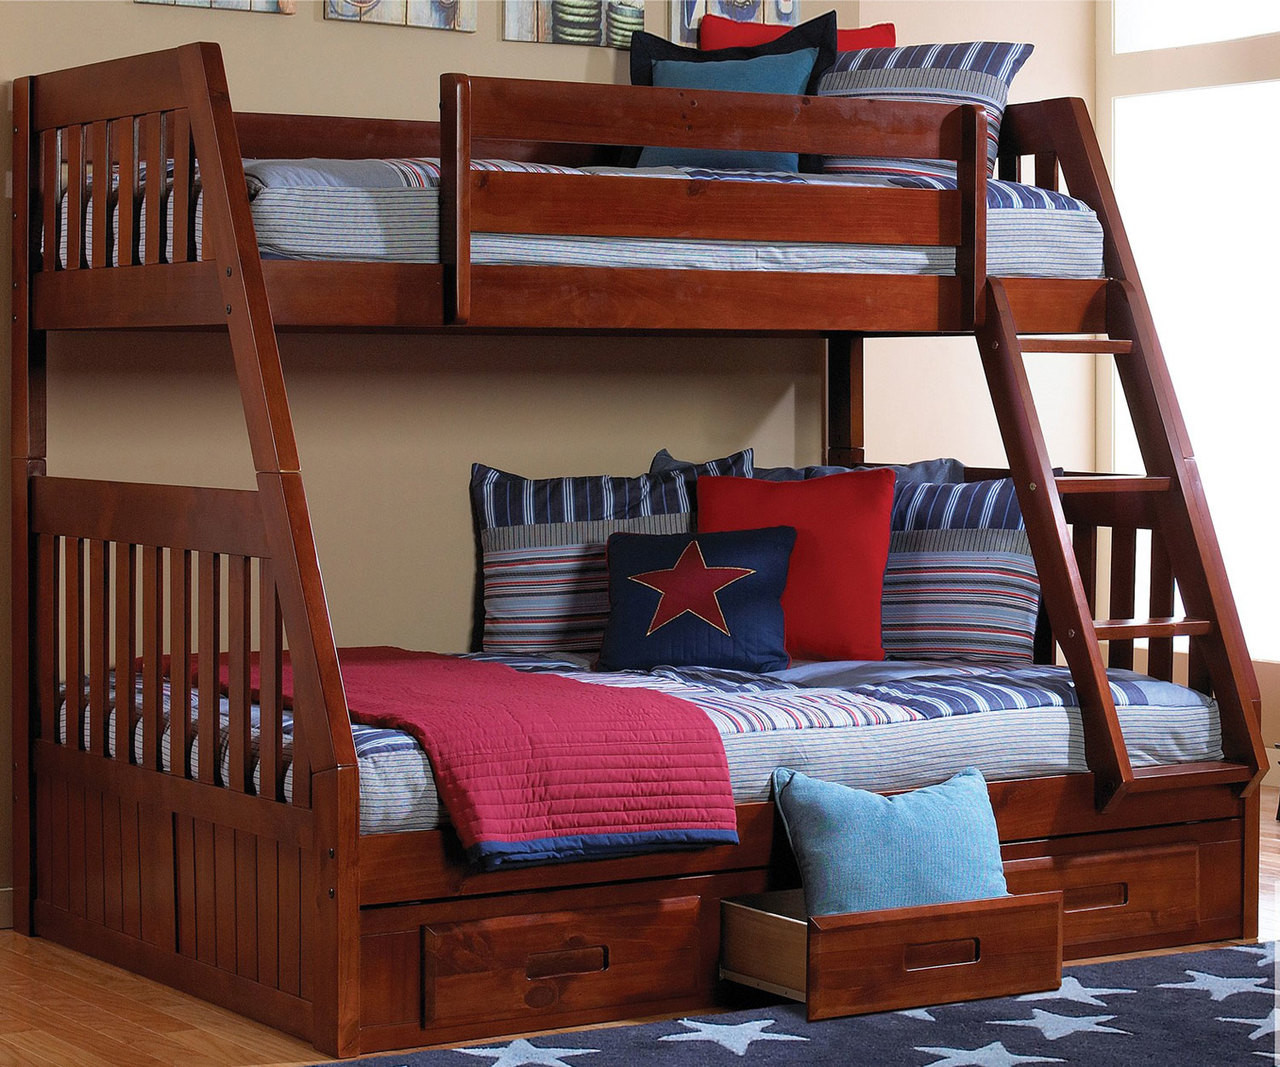 Discovery World Furniture Twin Over Full Merlot Bunk 2818 Bed For Kids Twin Over Full Bunkbeds With Storage Drawers And Trundle Bed For Childrens Dwf1117